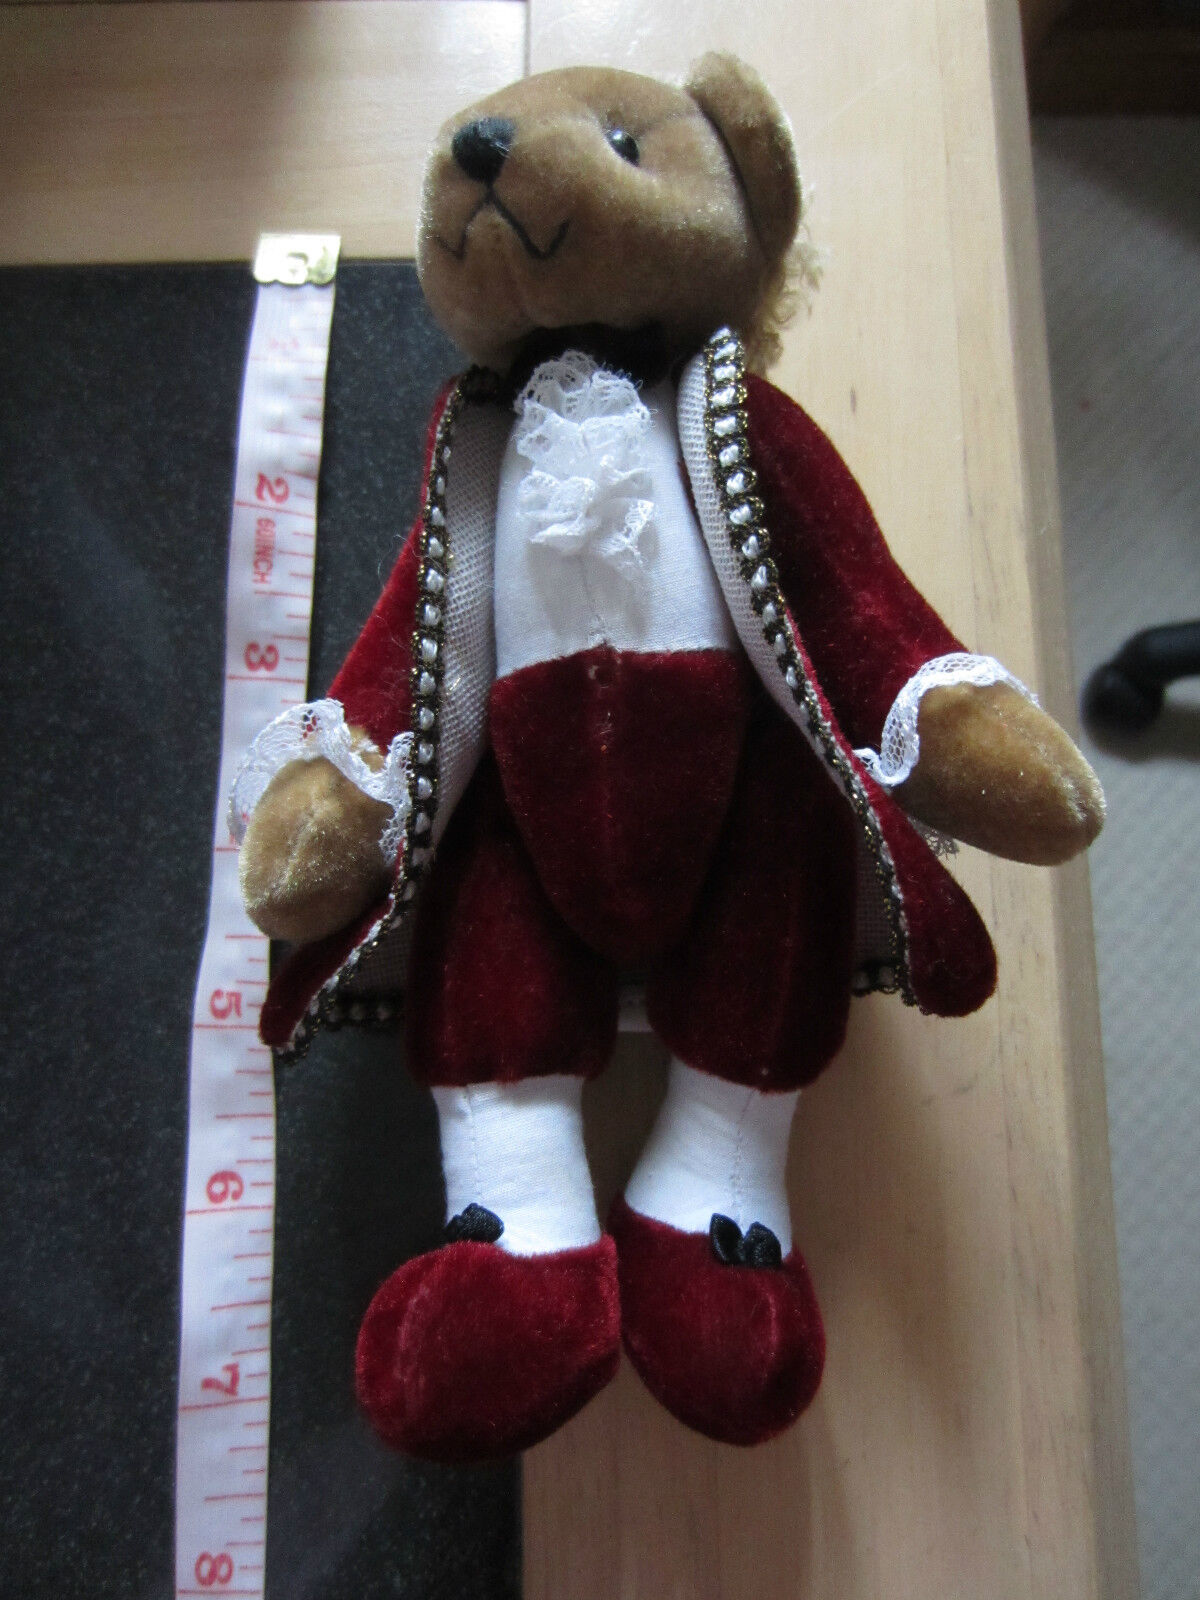 MOZART BEAR bought from MOZART BIRTHPLACE museum in SALZBURG, AUSTRIA